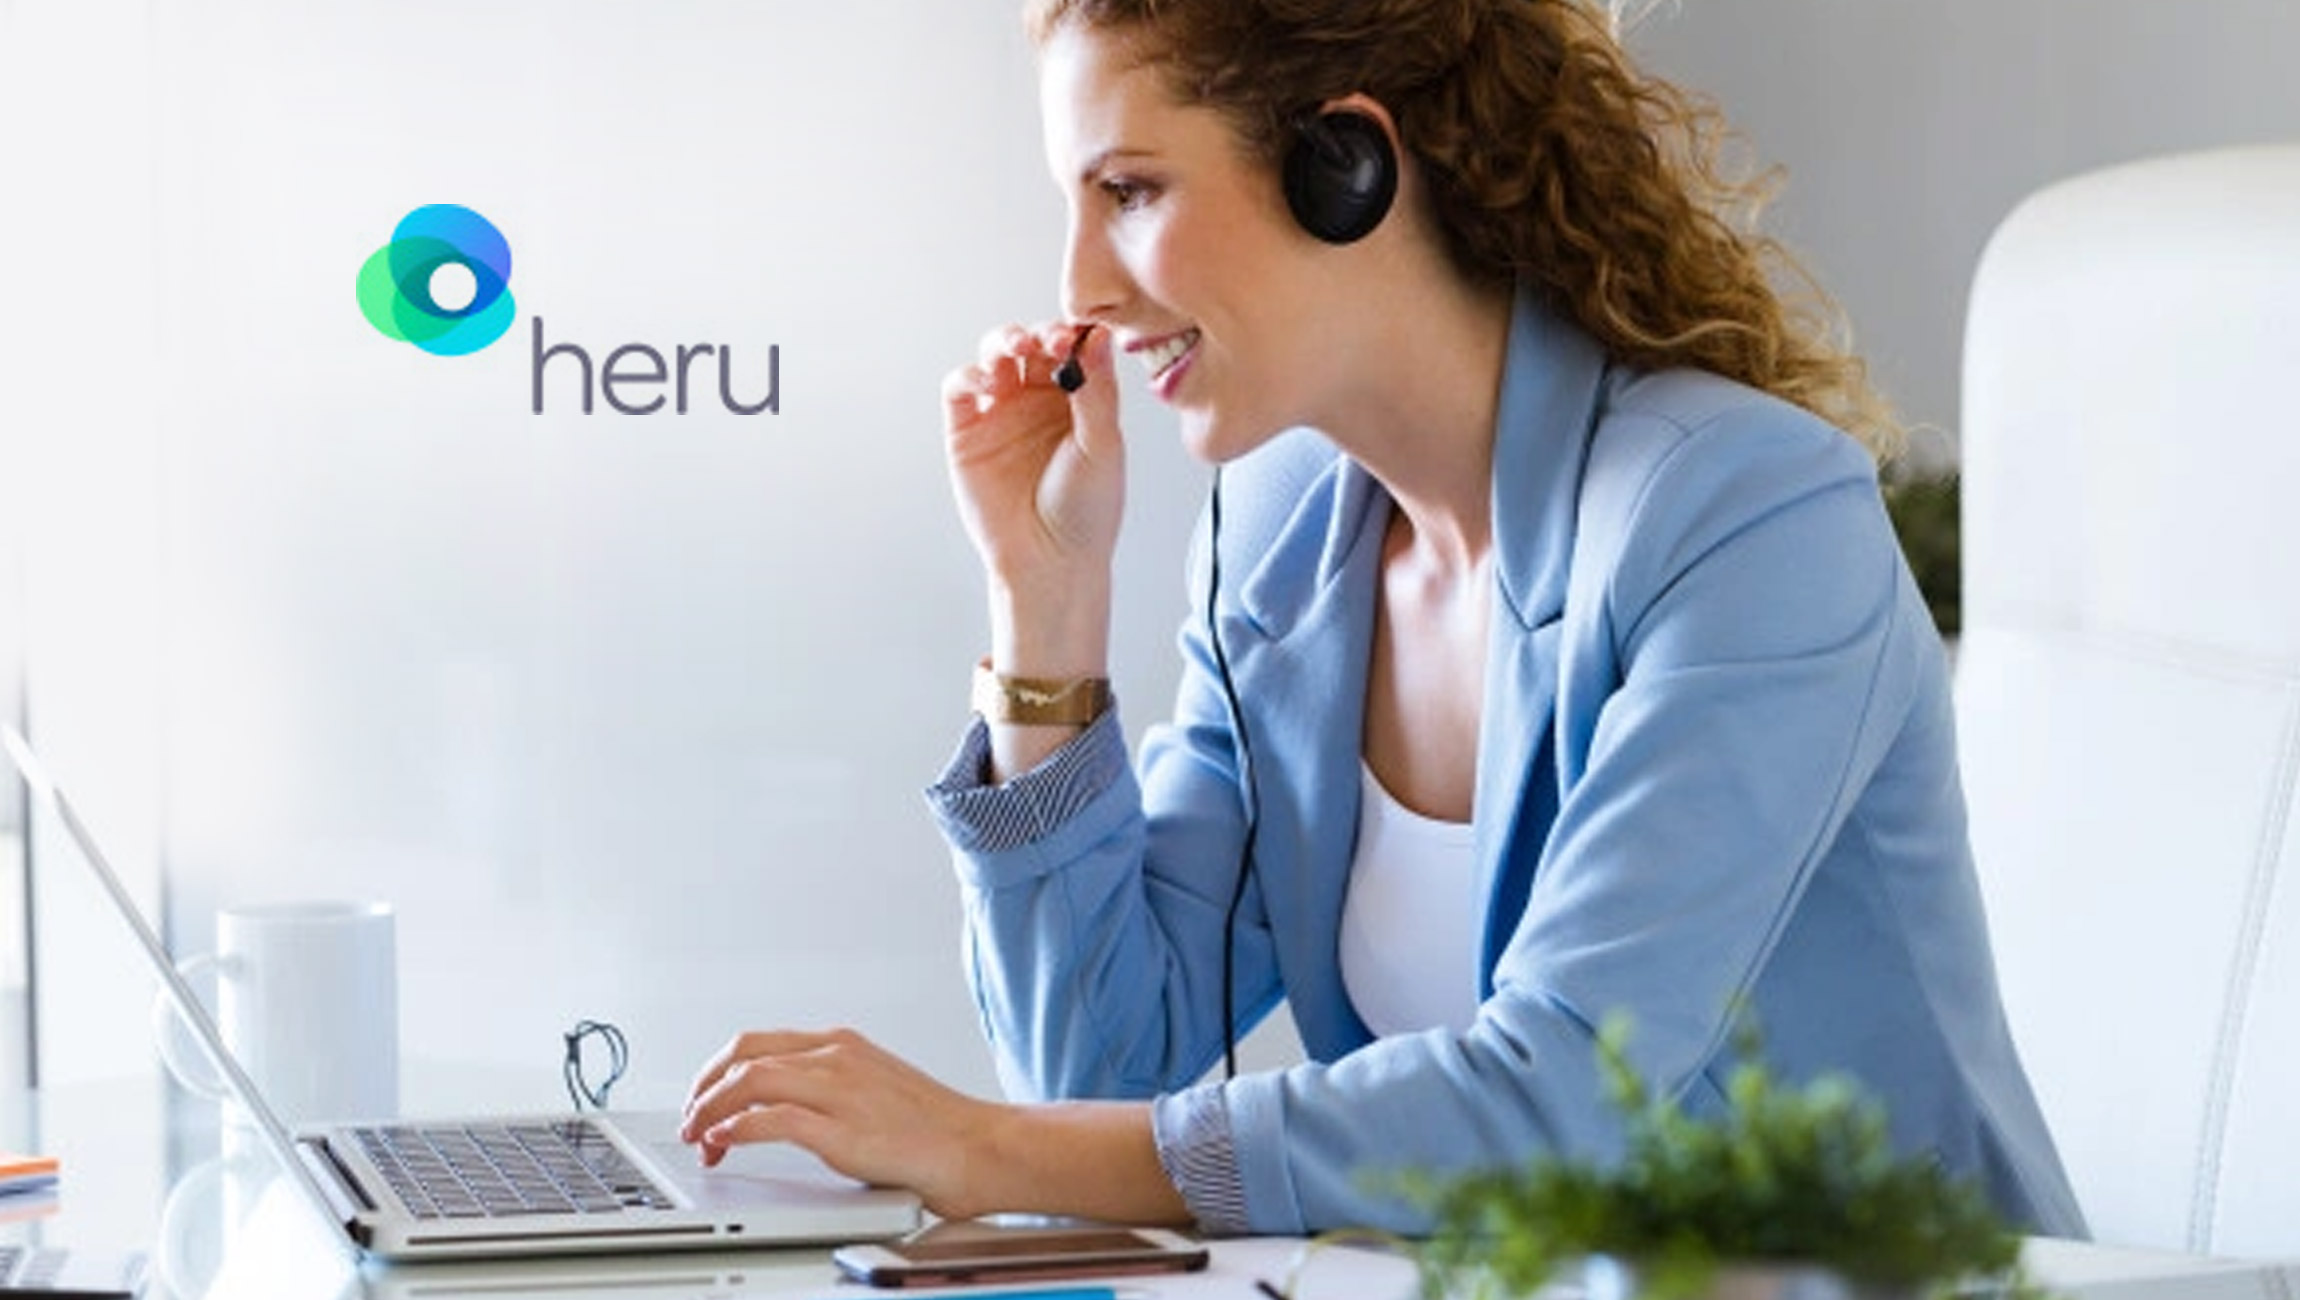 Heru, the Wearable Diagnostic and Vision Augmentation Leader, Launches Commercial Availability of re:Vive in Partnership with Vision Source